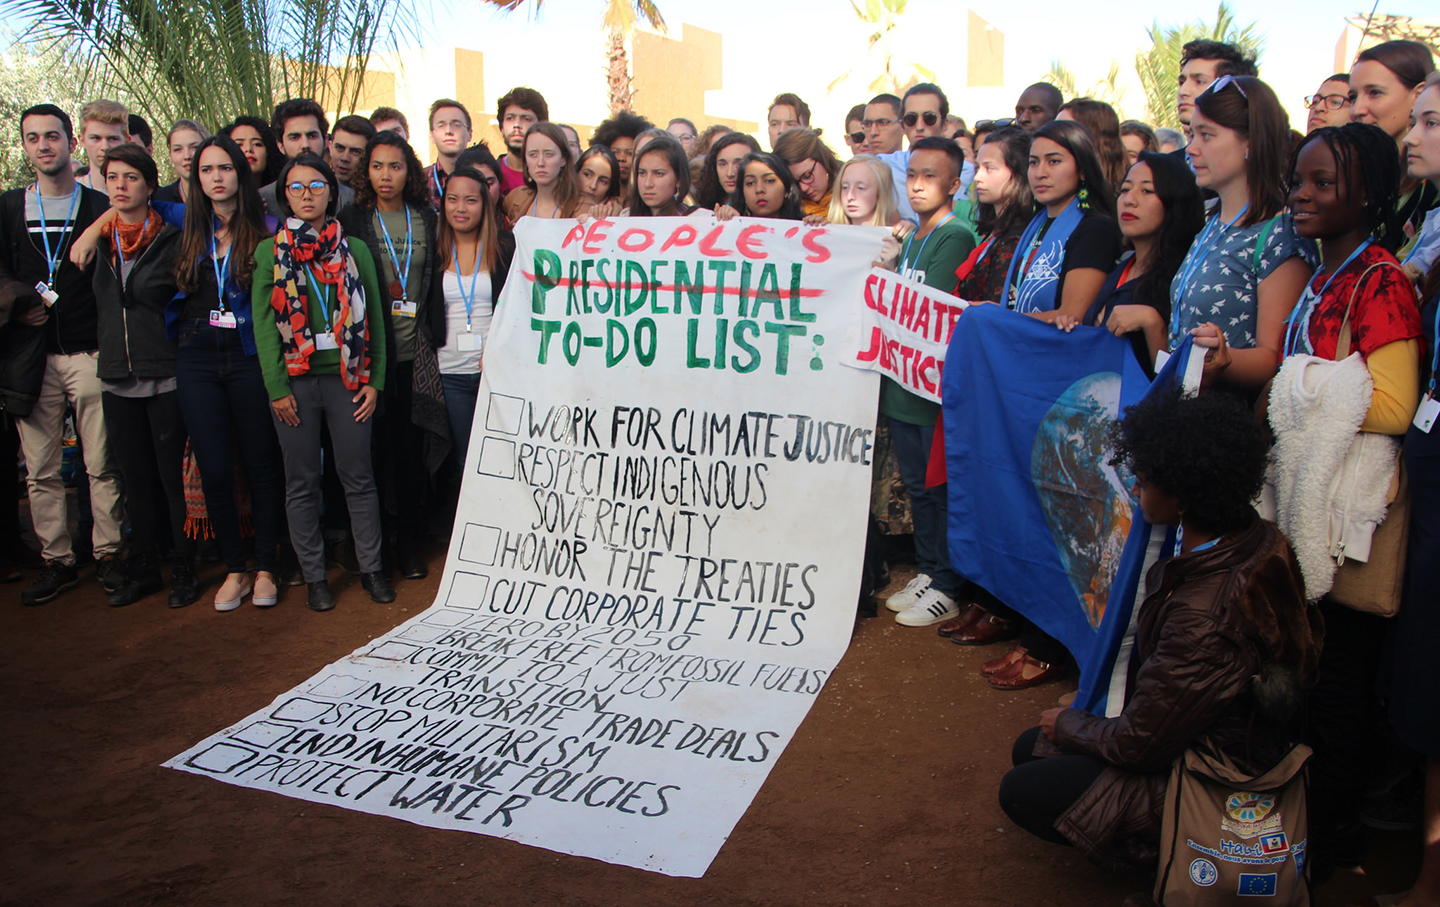 Youth in the UN Climate Change talks in Marrakech respond to the election of Donald Trump as US President.